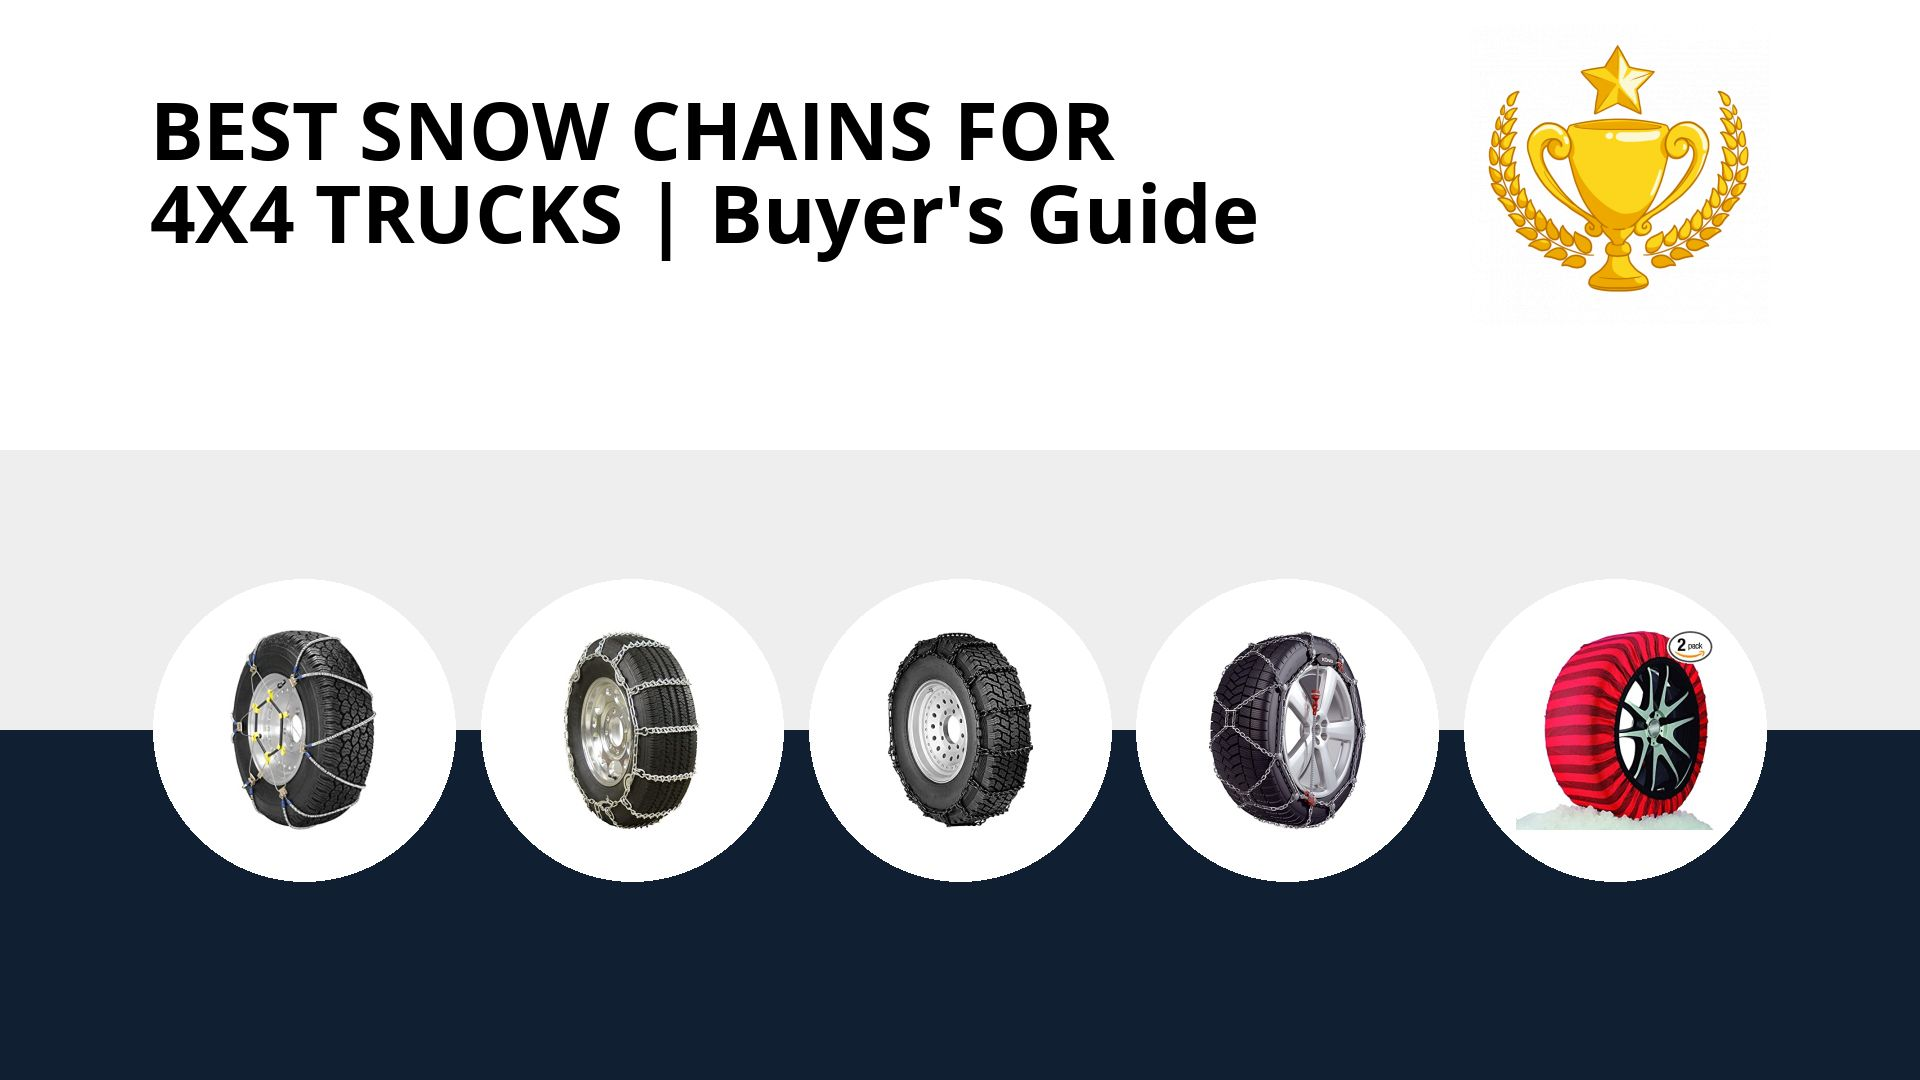 Best Snow Chains For 4x4 Trucks: image